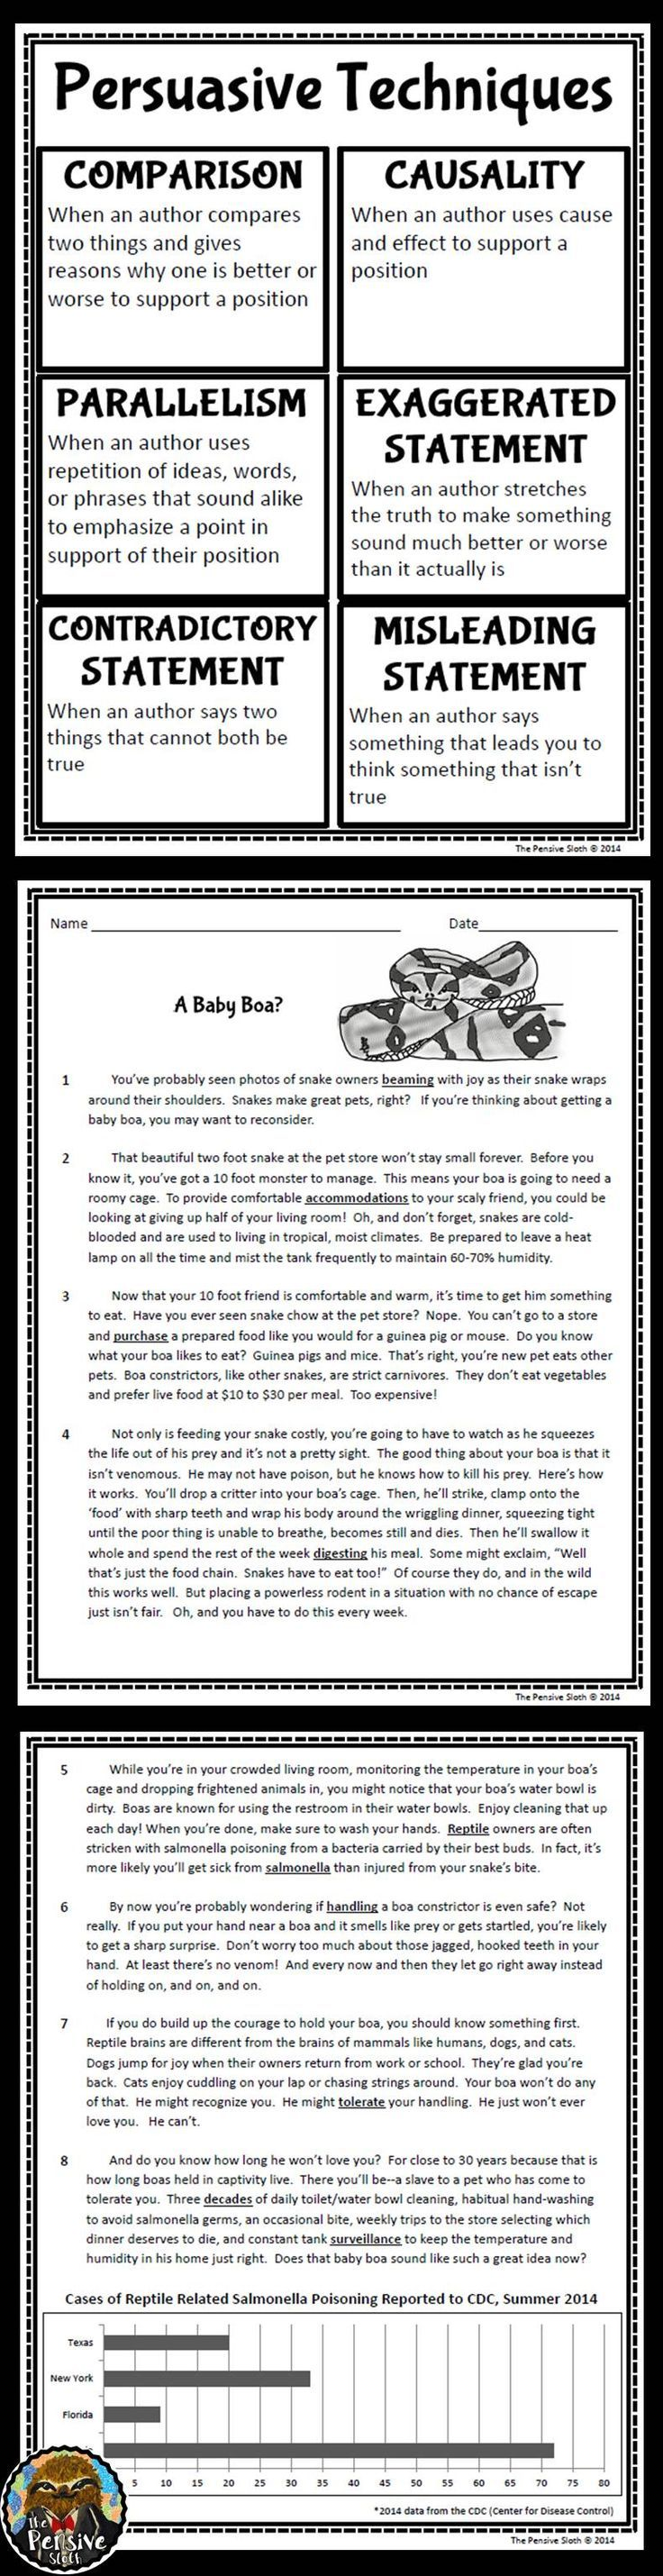 17 best ideas about persuasive text persuasive 5th grade anchor chart and close reading passage for teaching persuasive techniques including causality parallelism